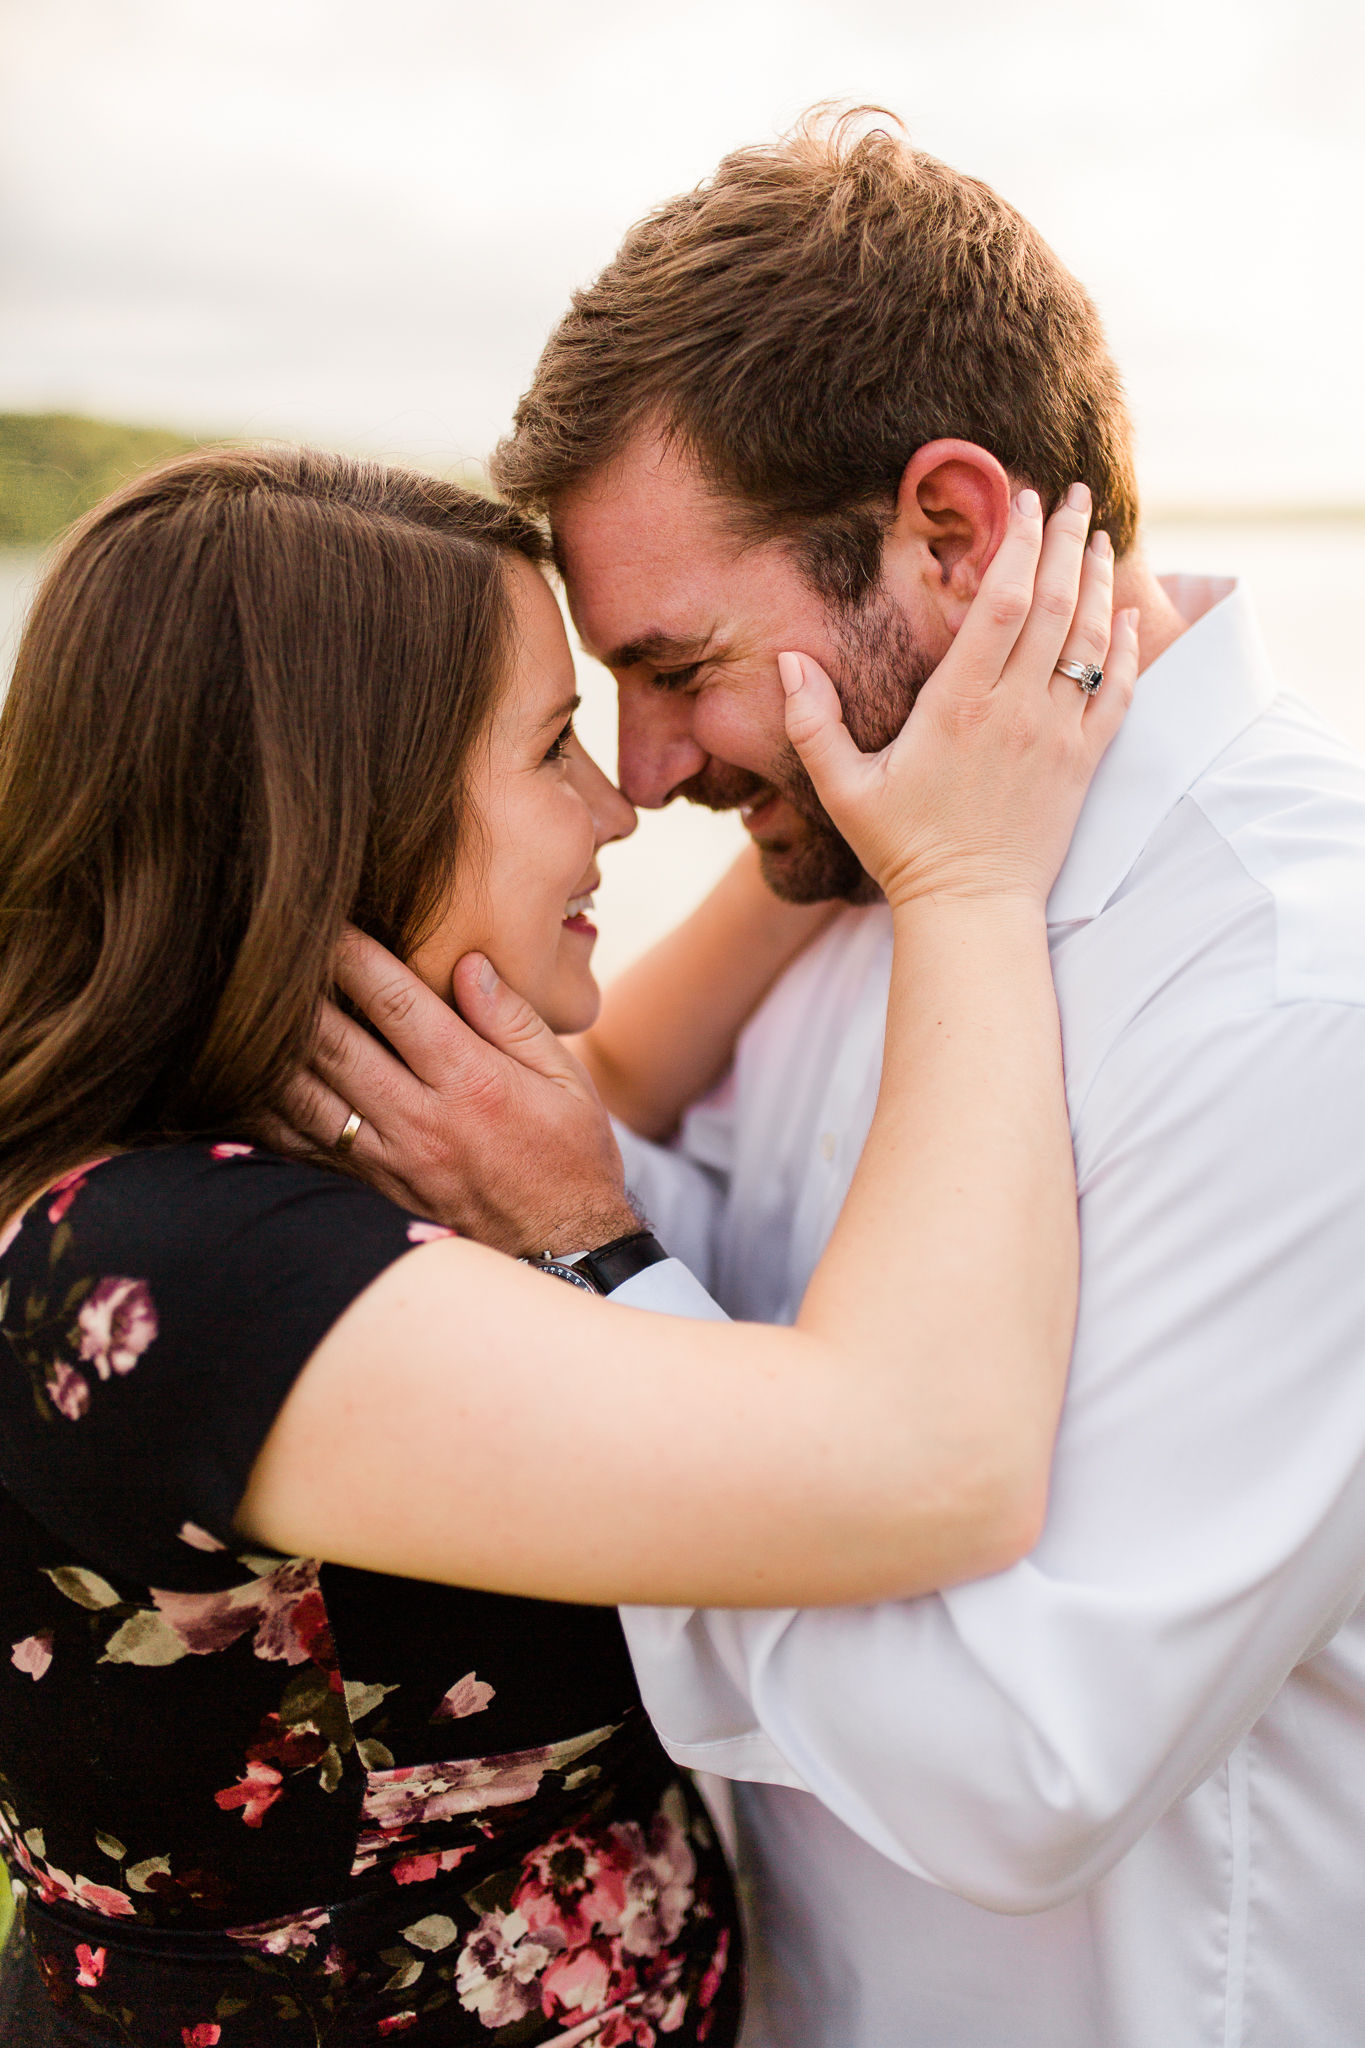 Close up of a pregant couple touching noses at sunset, Kansas City candid lifestyle maternity photographer, Shawnee Mission Park, Rebecca Clair Photography